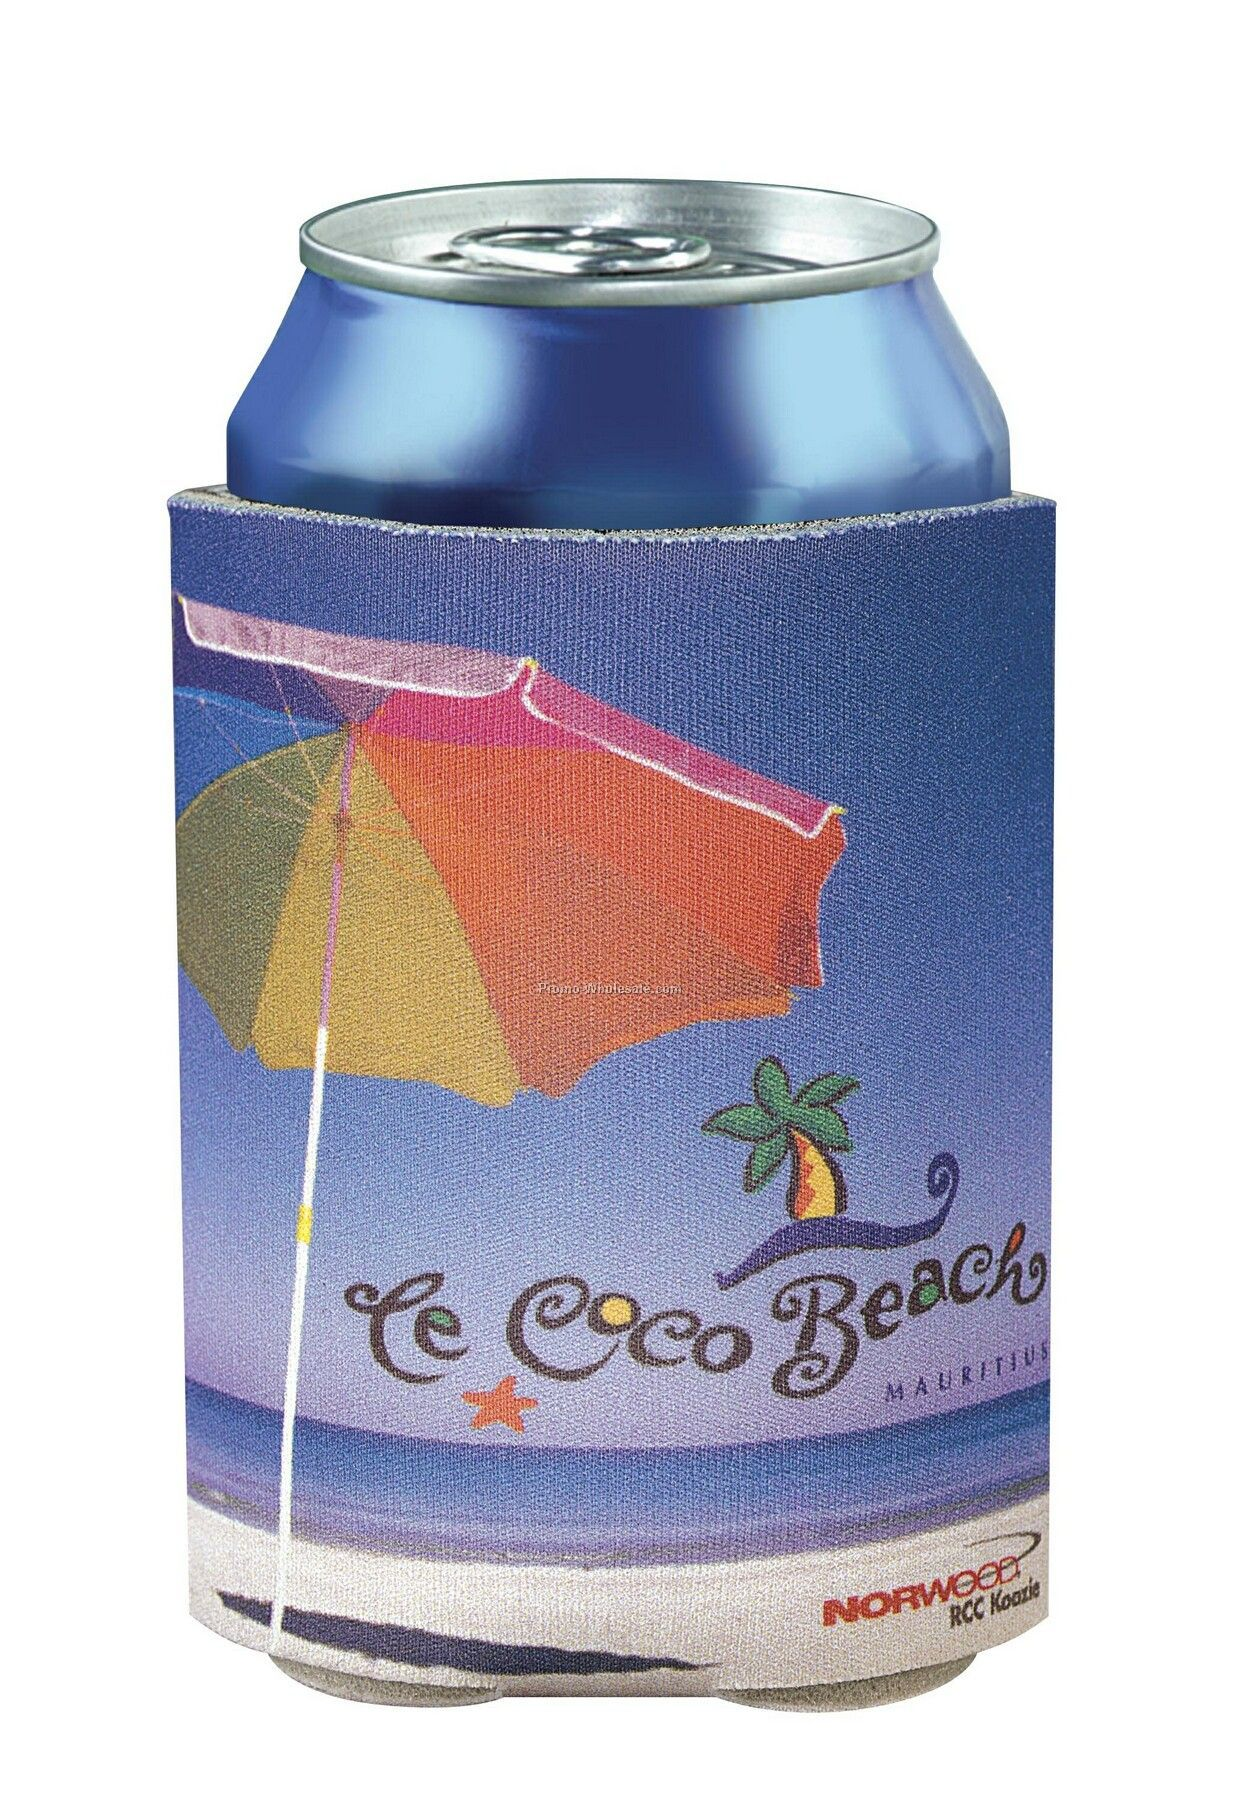 Rcc Koozie 4 Color Process Collapsible Koozie Can Kooler